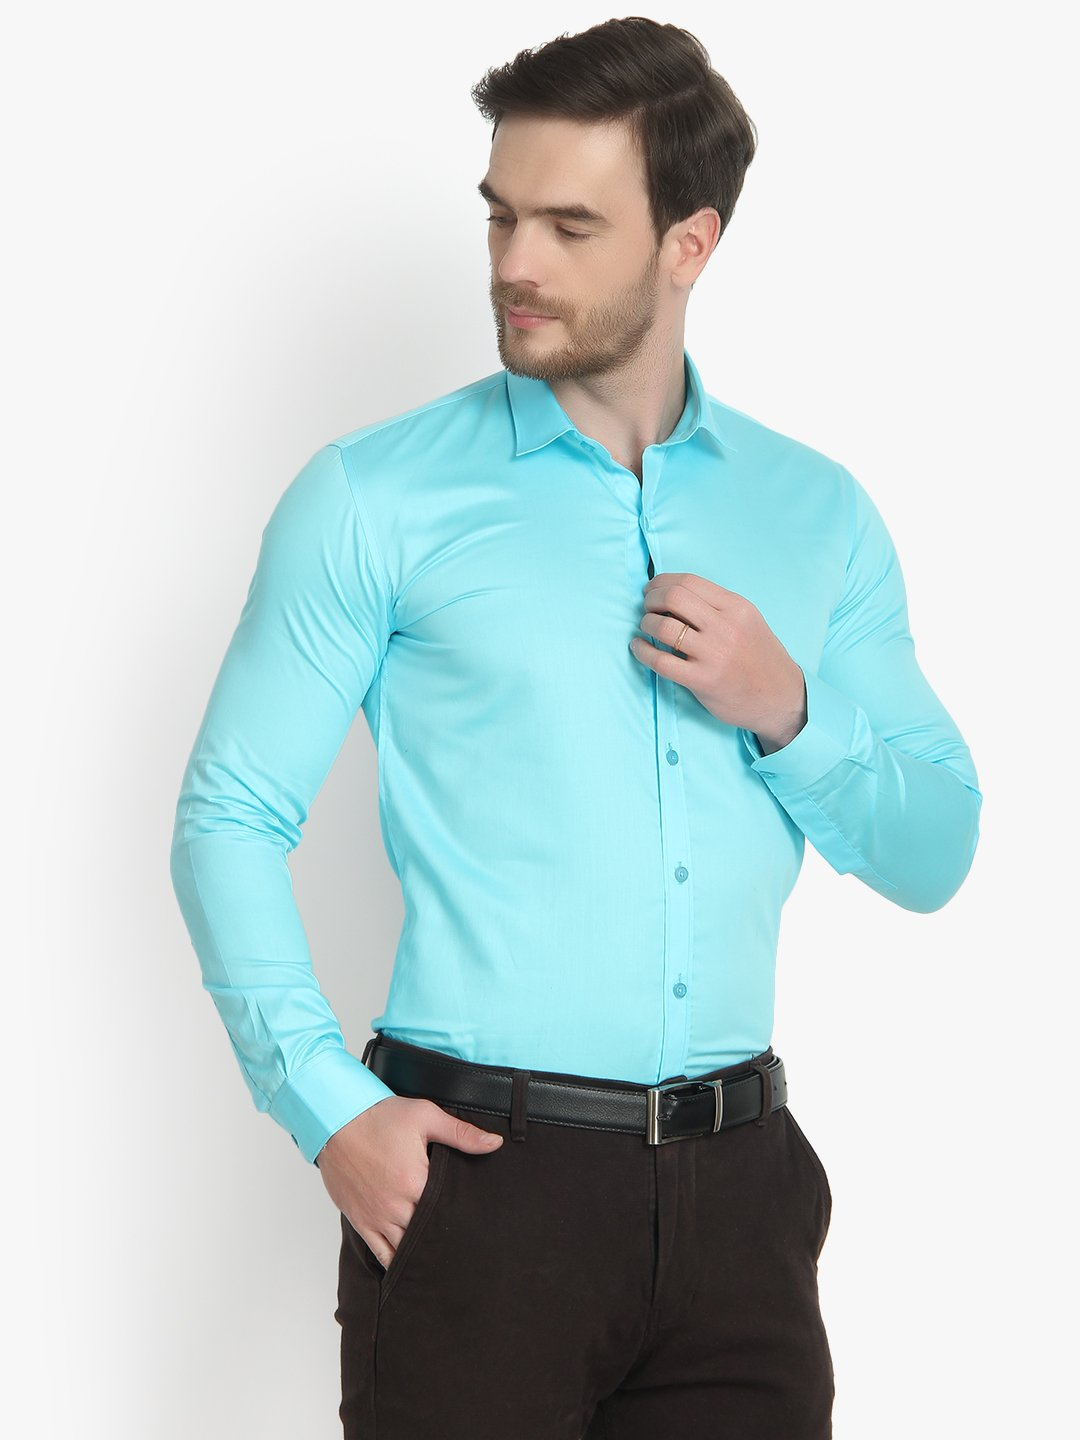 Mens Formal Turquoise Blue Cotton Shirt- Code-1021